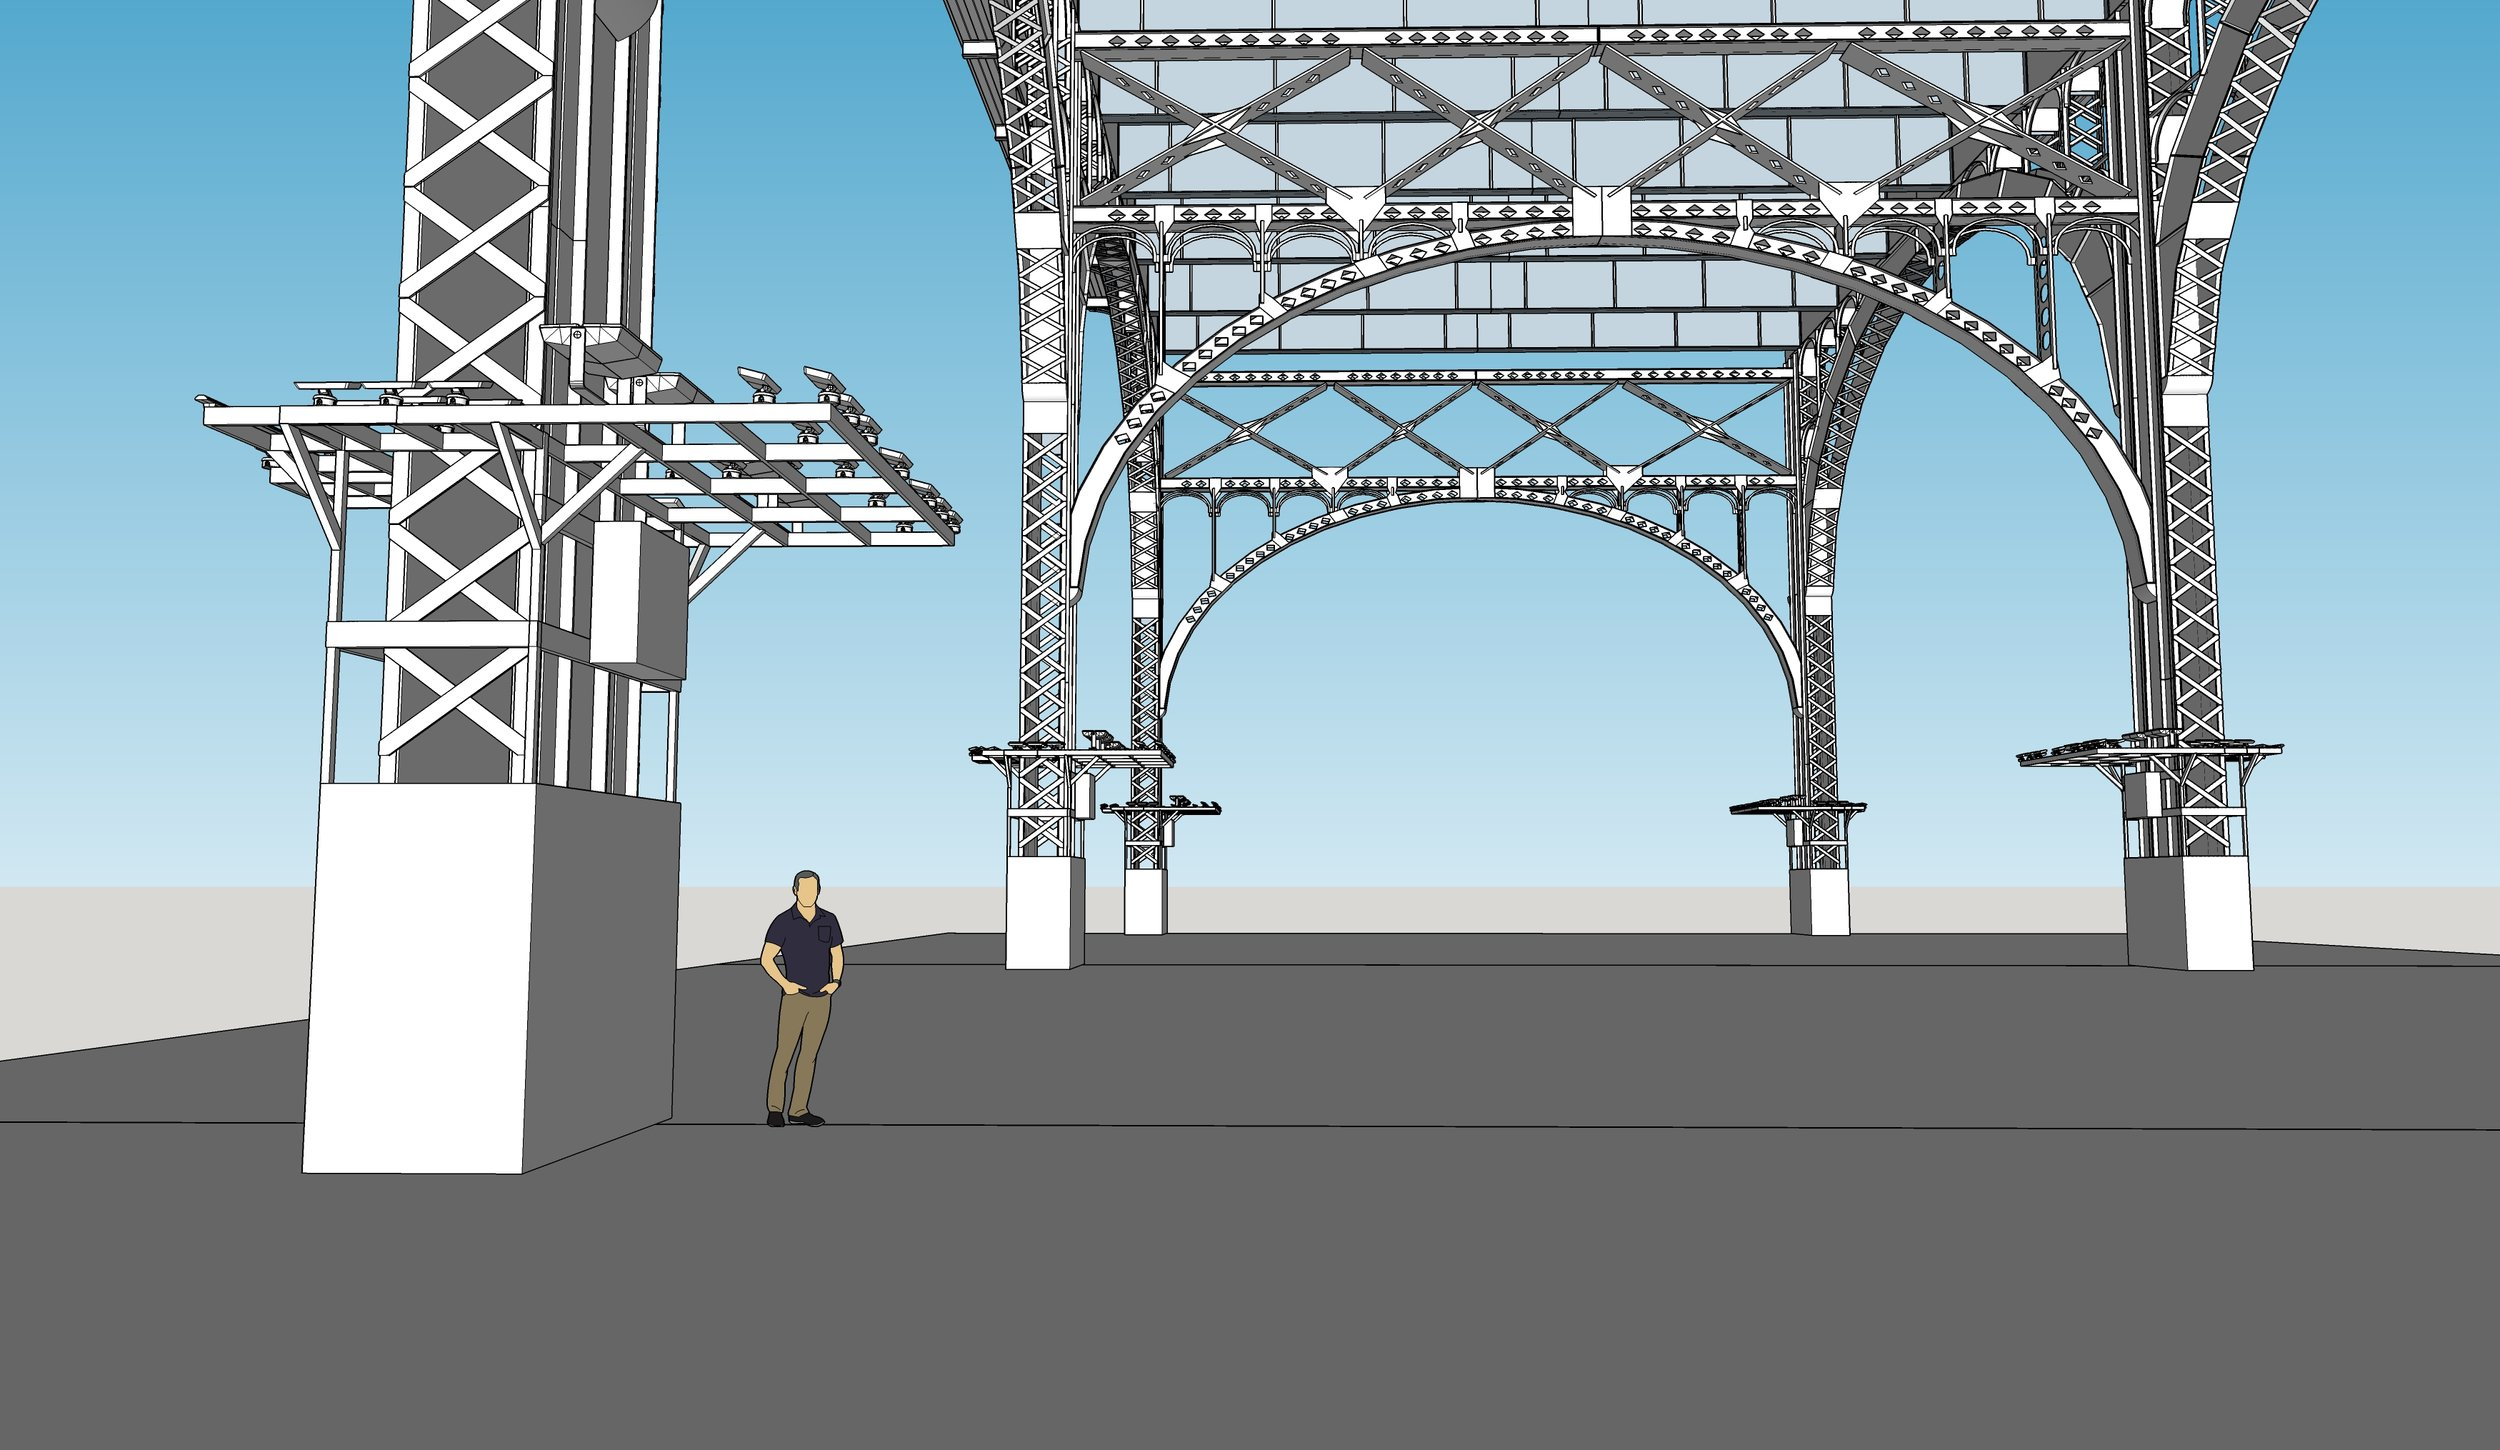 Sketchup export 8-00 array.jpg